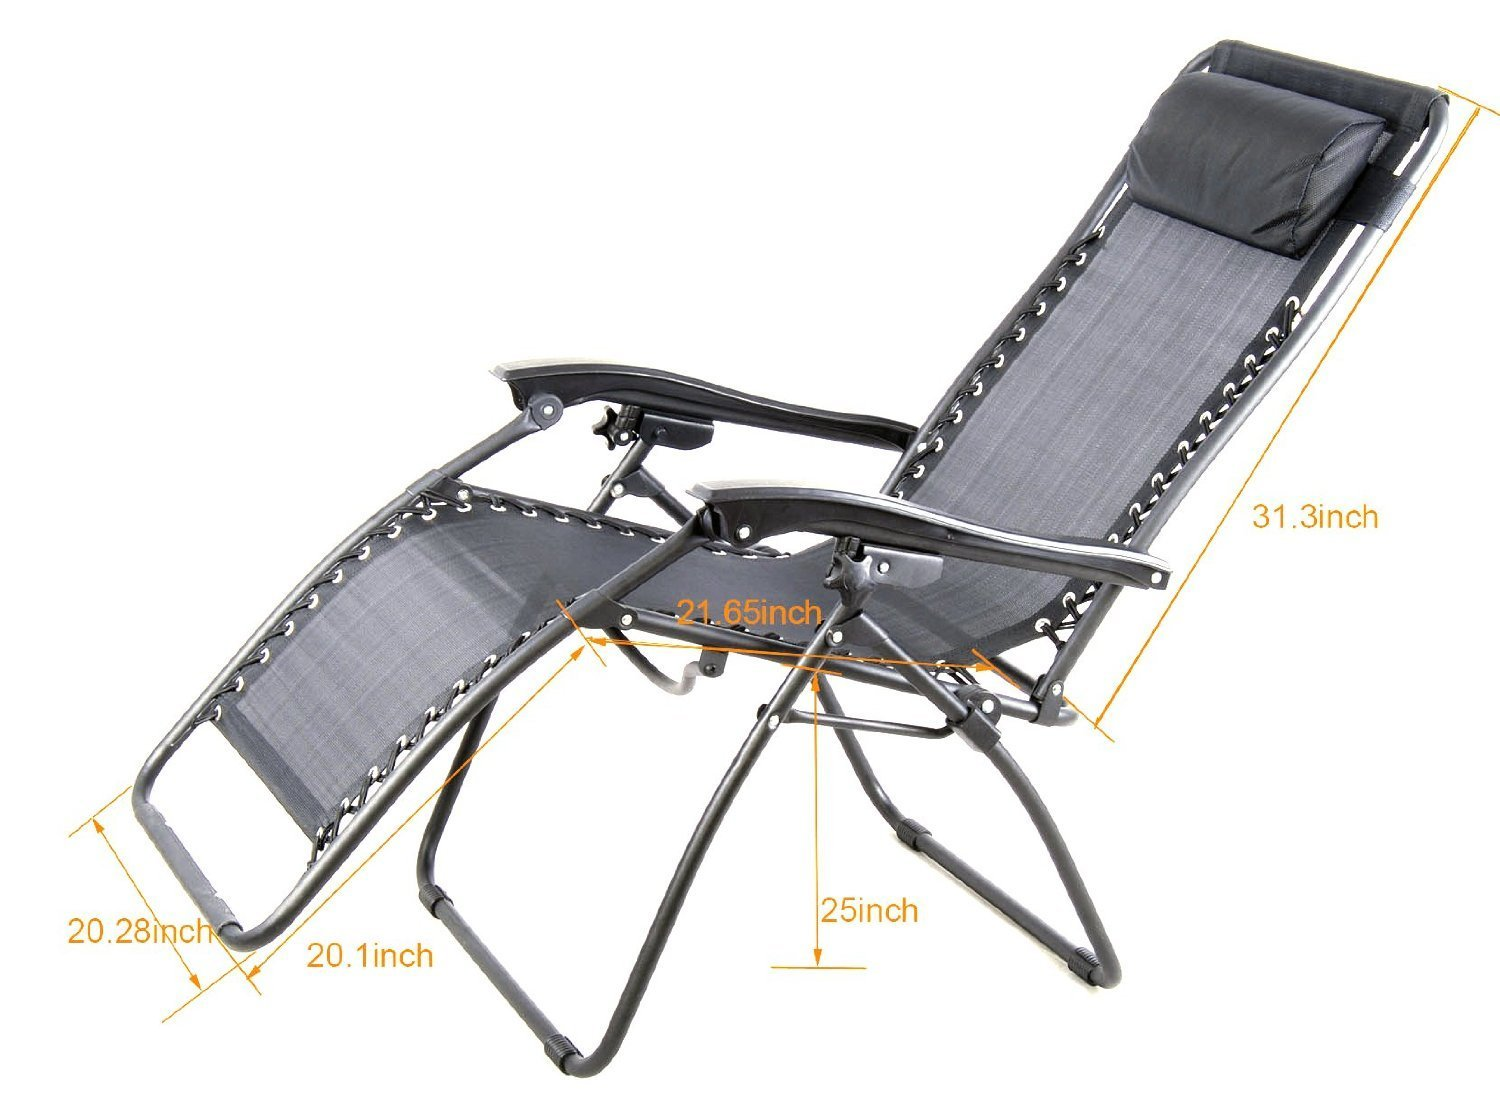 Outsunny Zero Gravity Recliner Review The No Brainer Chair